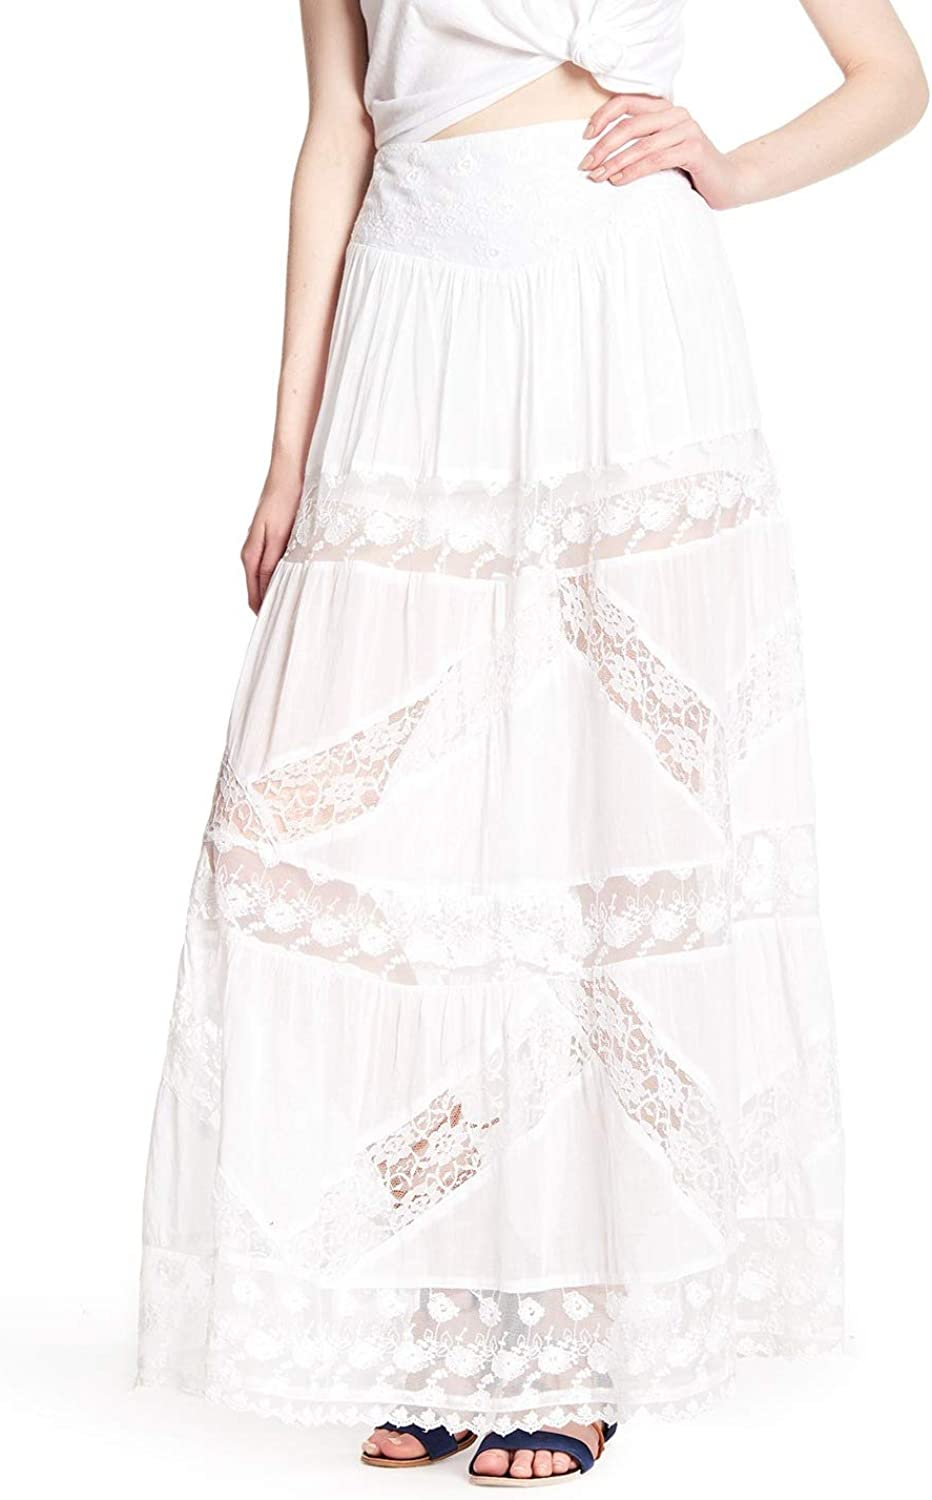 Free People Womens Lace Short Lined Maxi Skirt